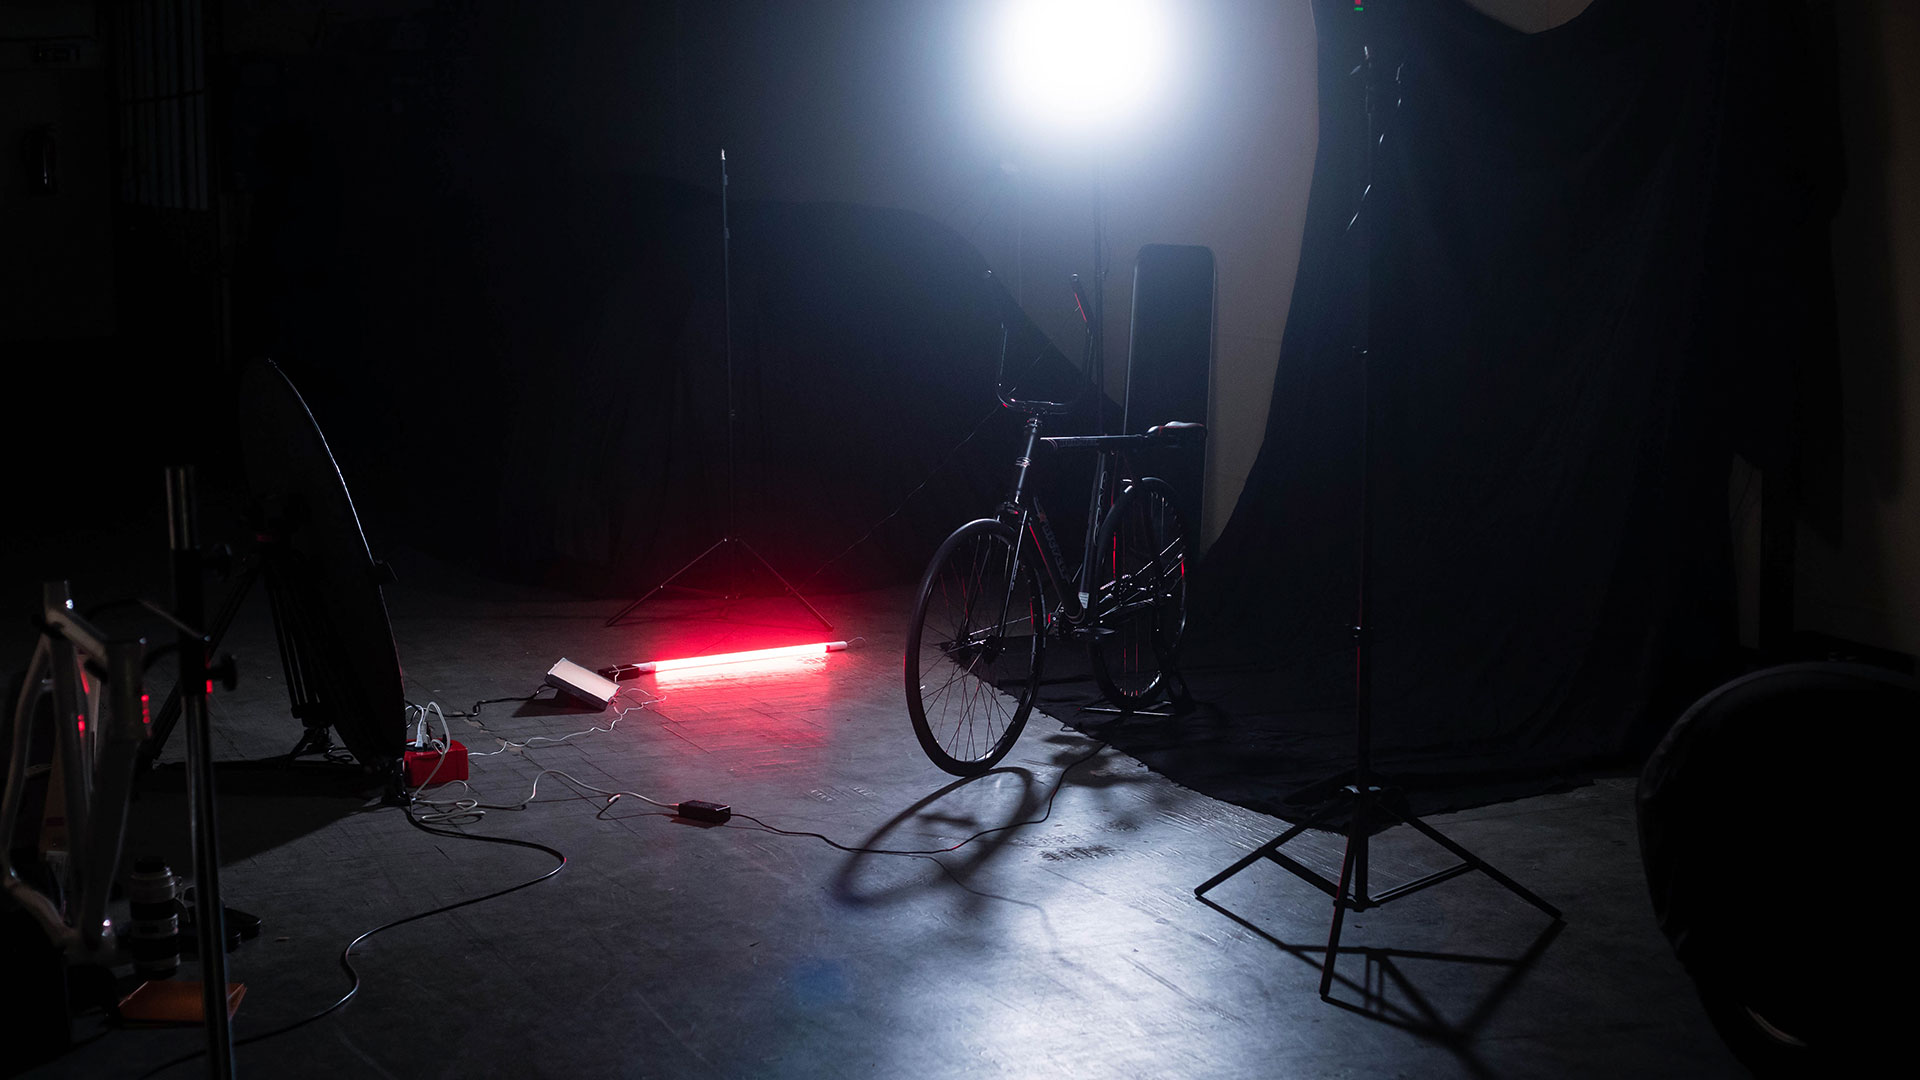 Starbicycle Shooting by ESE Media